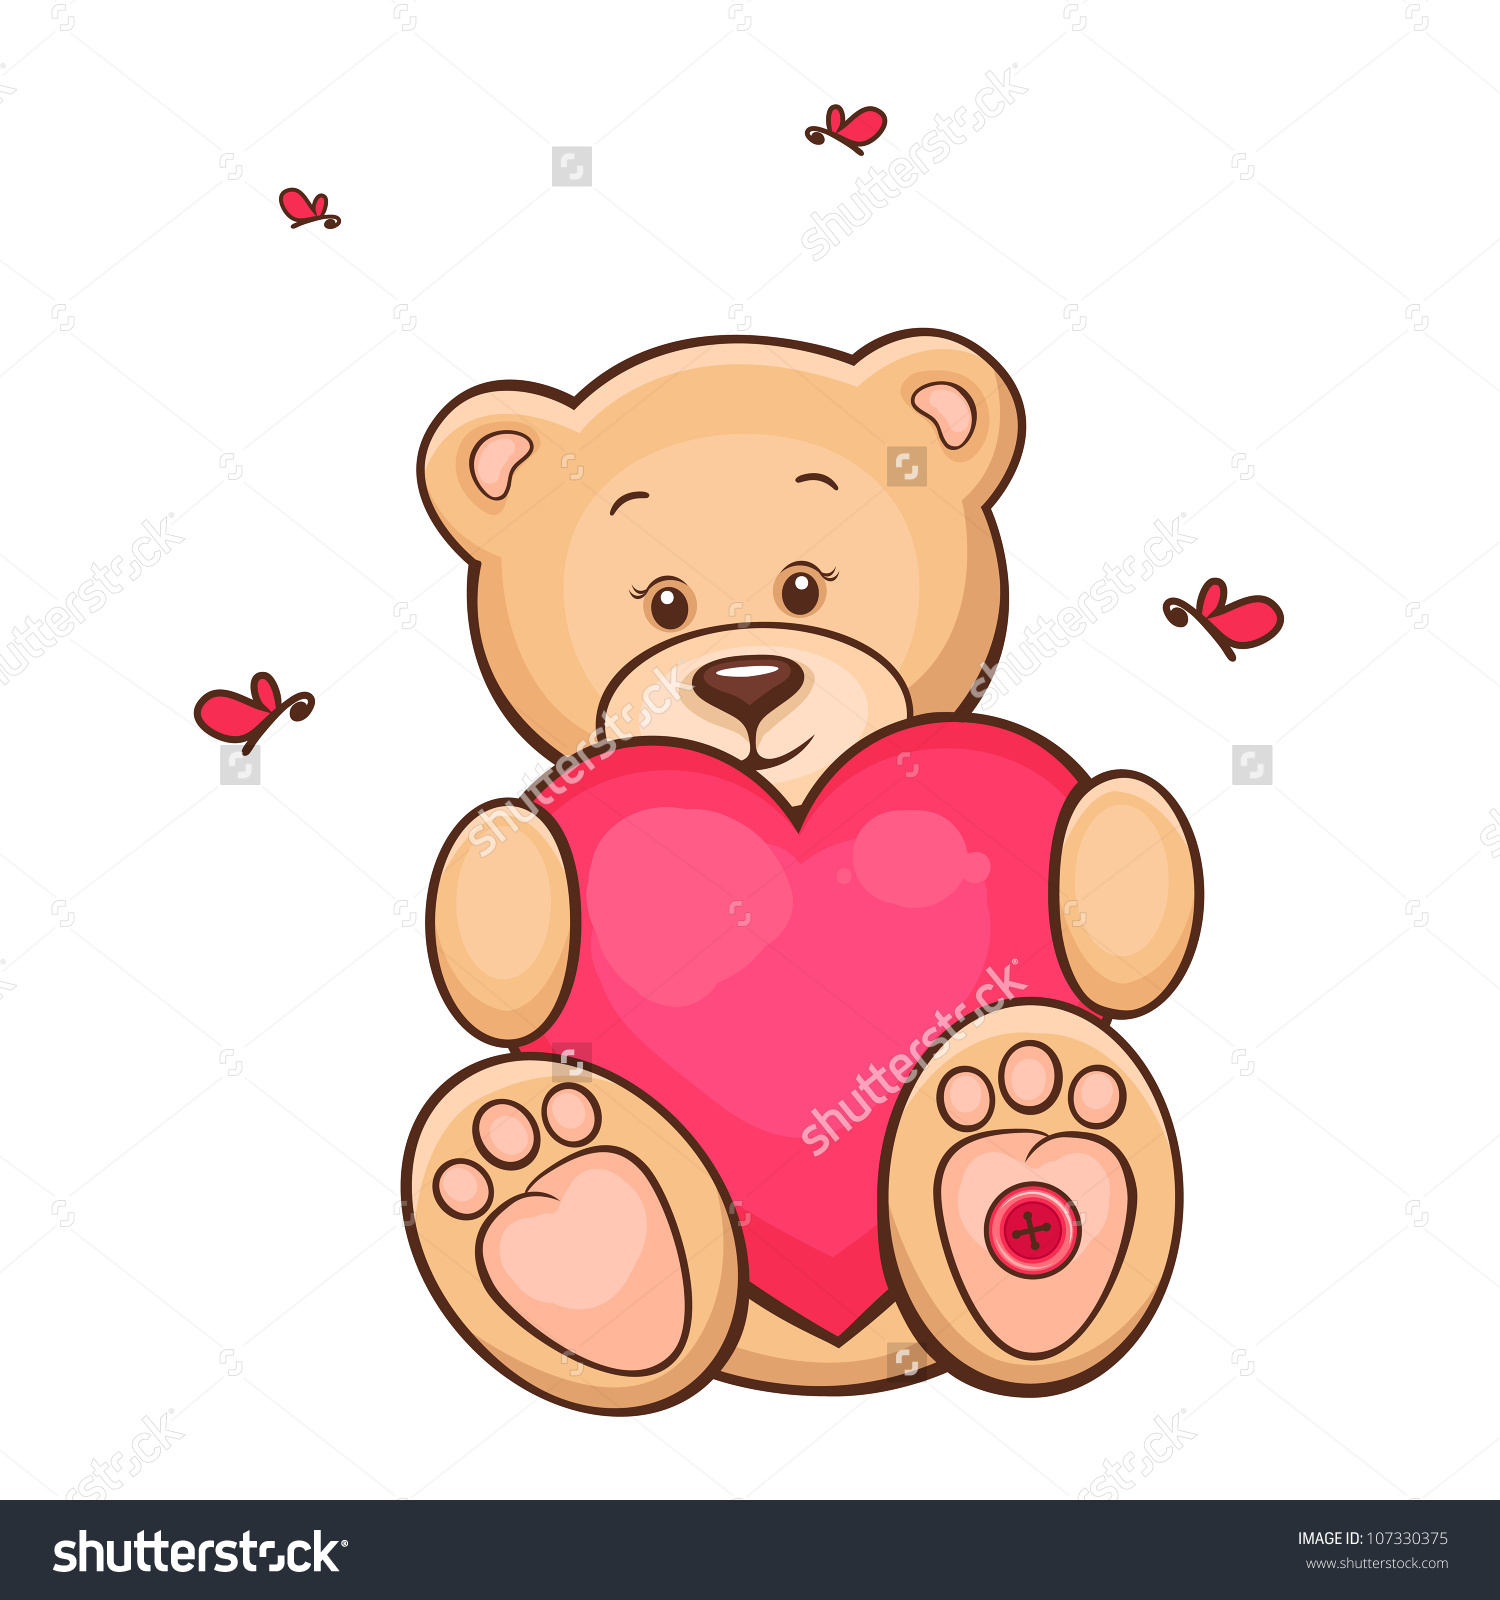 1500x1600 Cute Teddy Bear Drawing Drawn Teddy Bear Heart Drawing